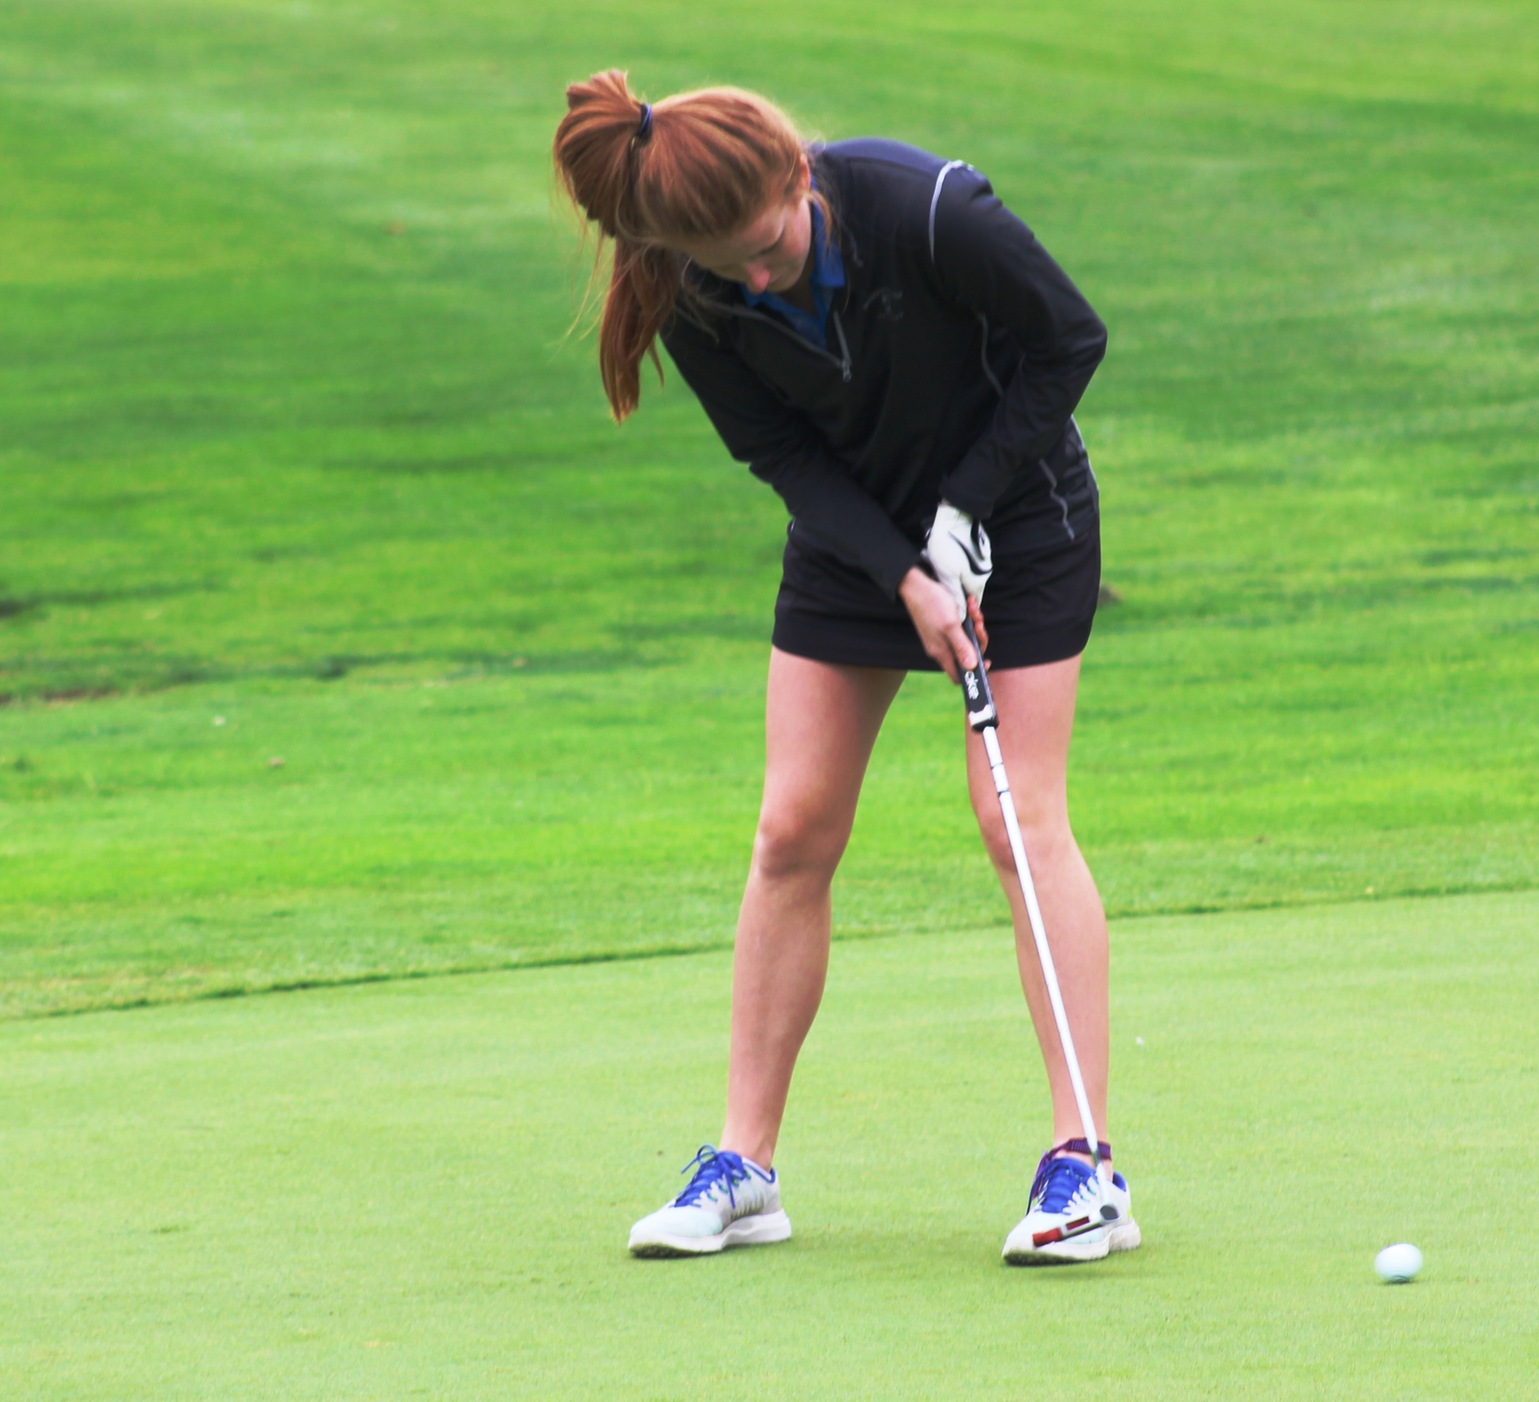 NIACC's Ashley Alert makes a putt during Tuesday's round.